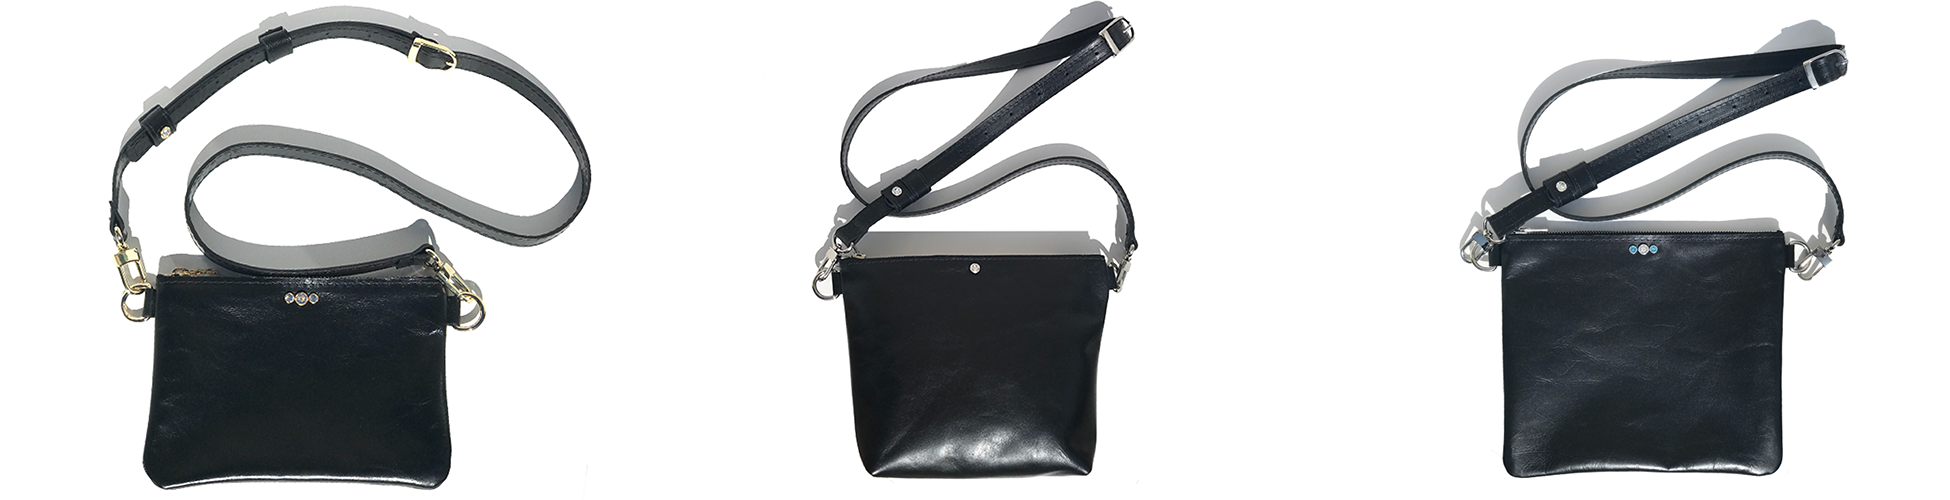 Italian Leather Crossbody Bags Made in USA - MONOLISA Collection